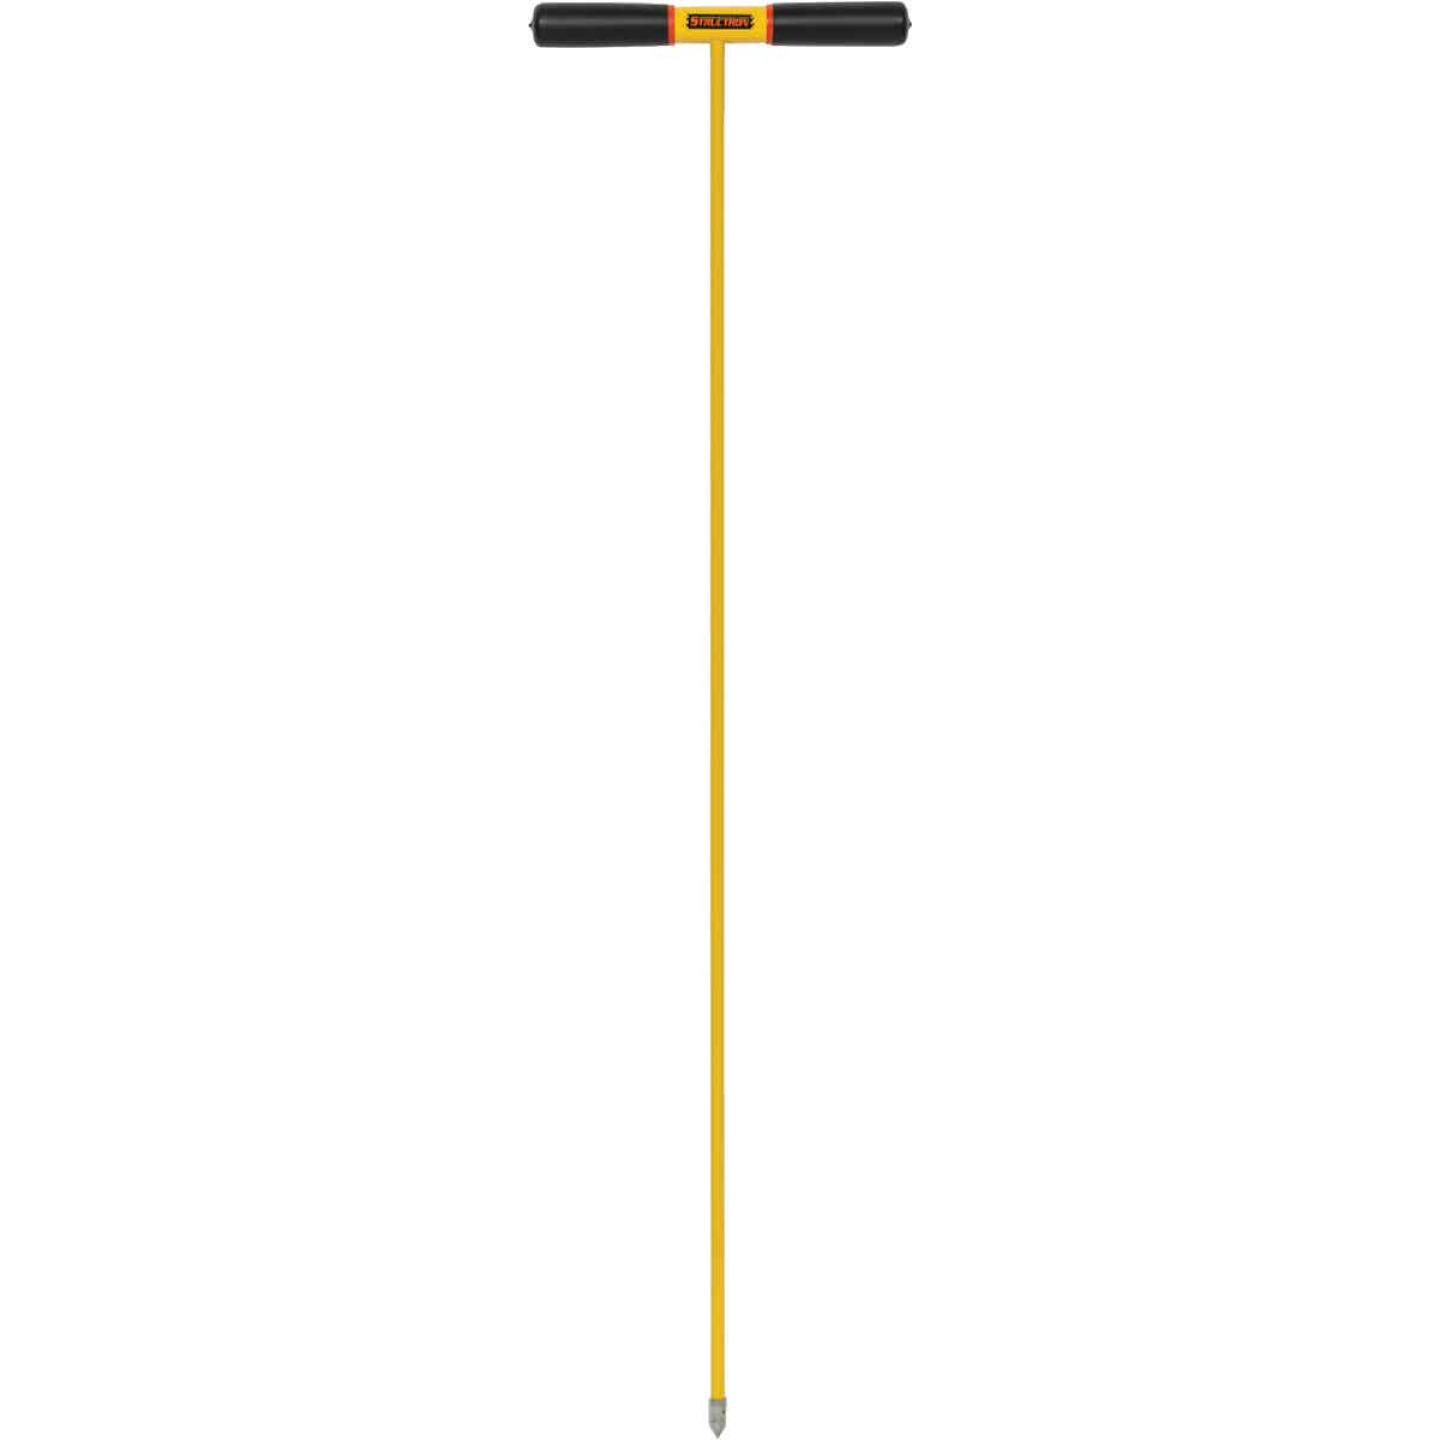 Structron S600 Power 4 Ft. Fiberglass 1/2 In. Soil Probe Image 1